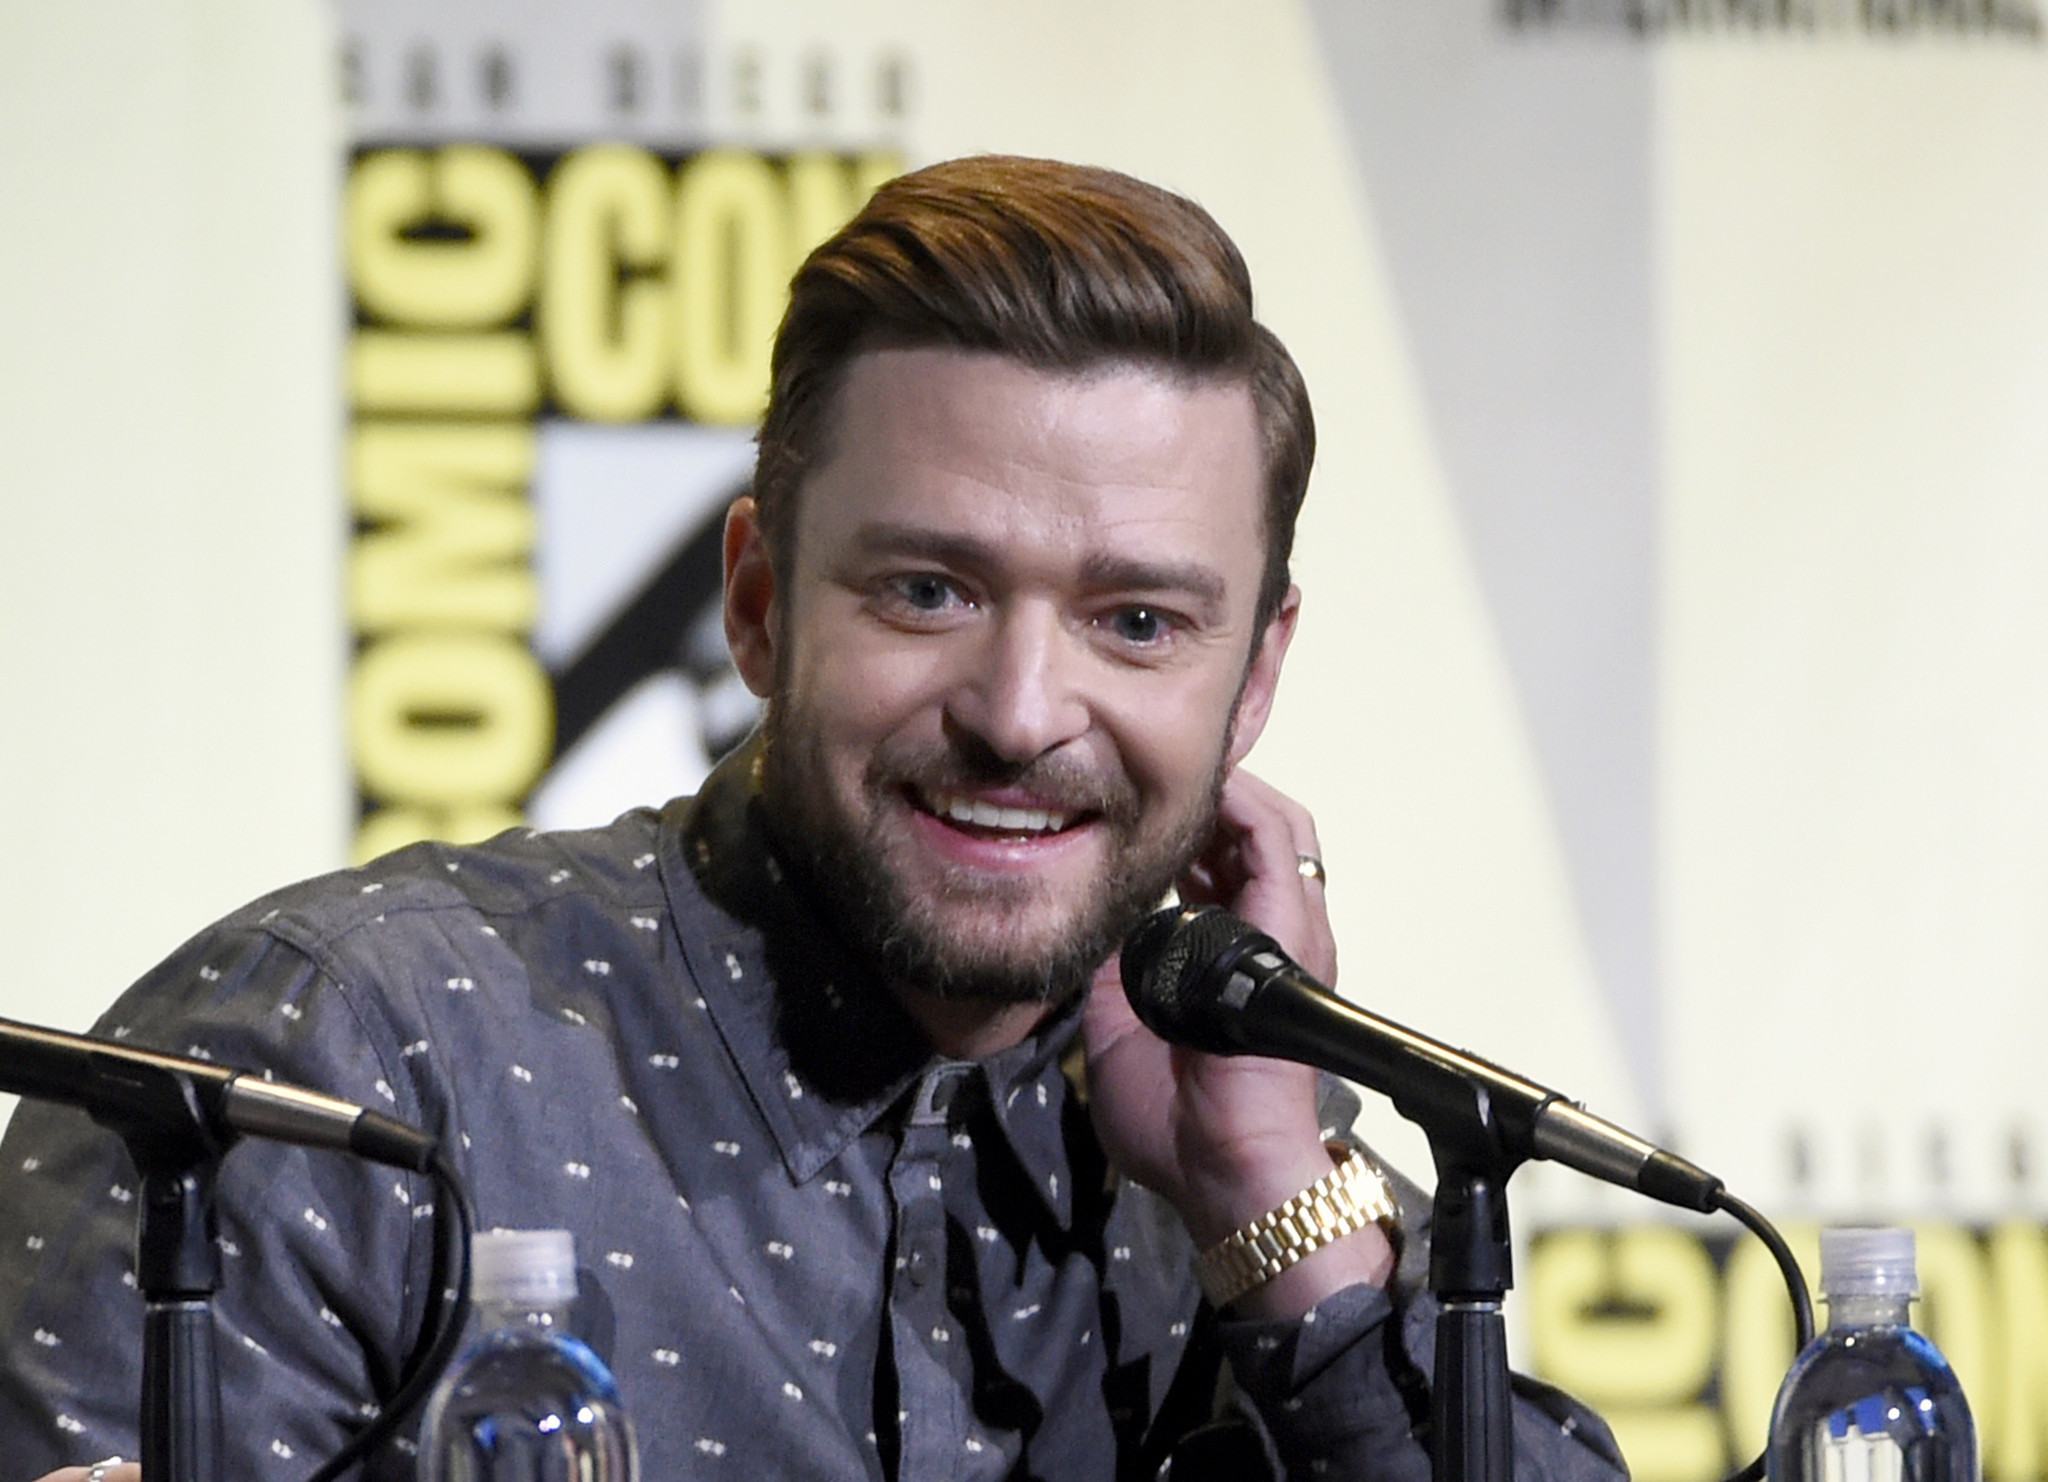 2c423ad20fd3b Fan arrested after  touching  Justin Timberlake during celebrity golf  tournament - Chicago Tribune